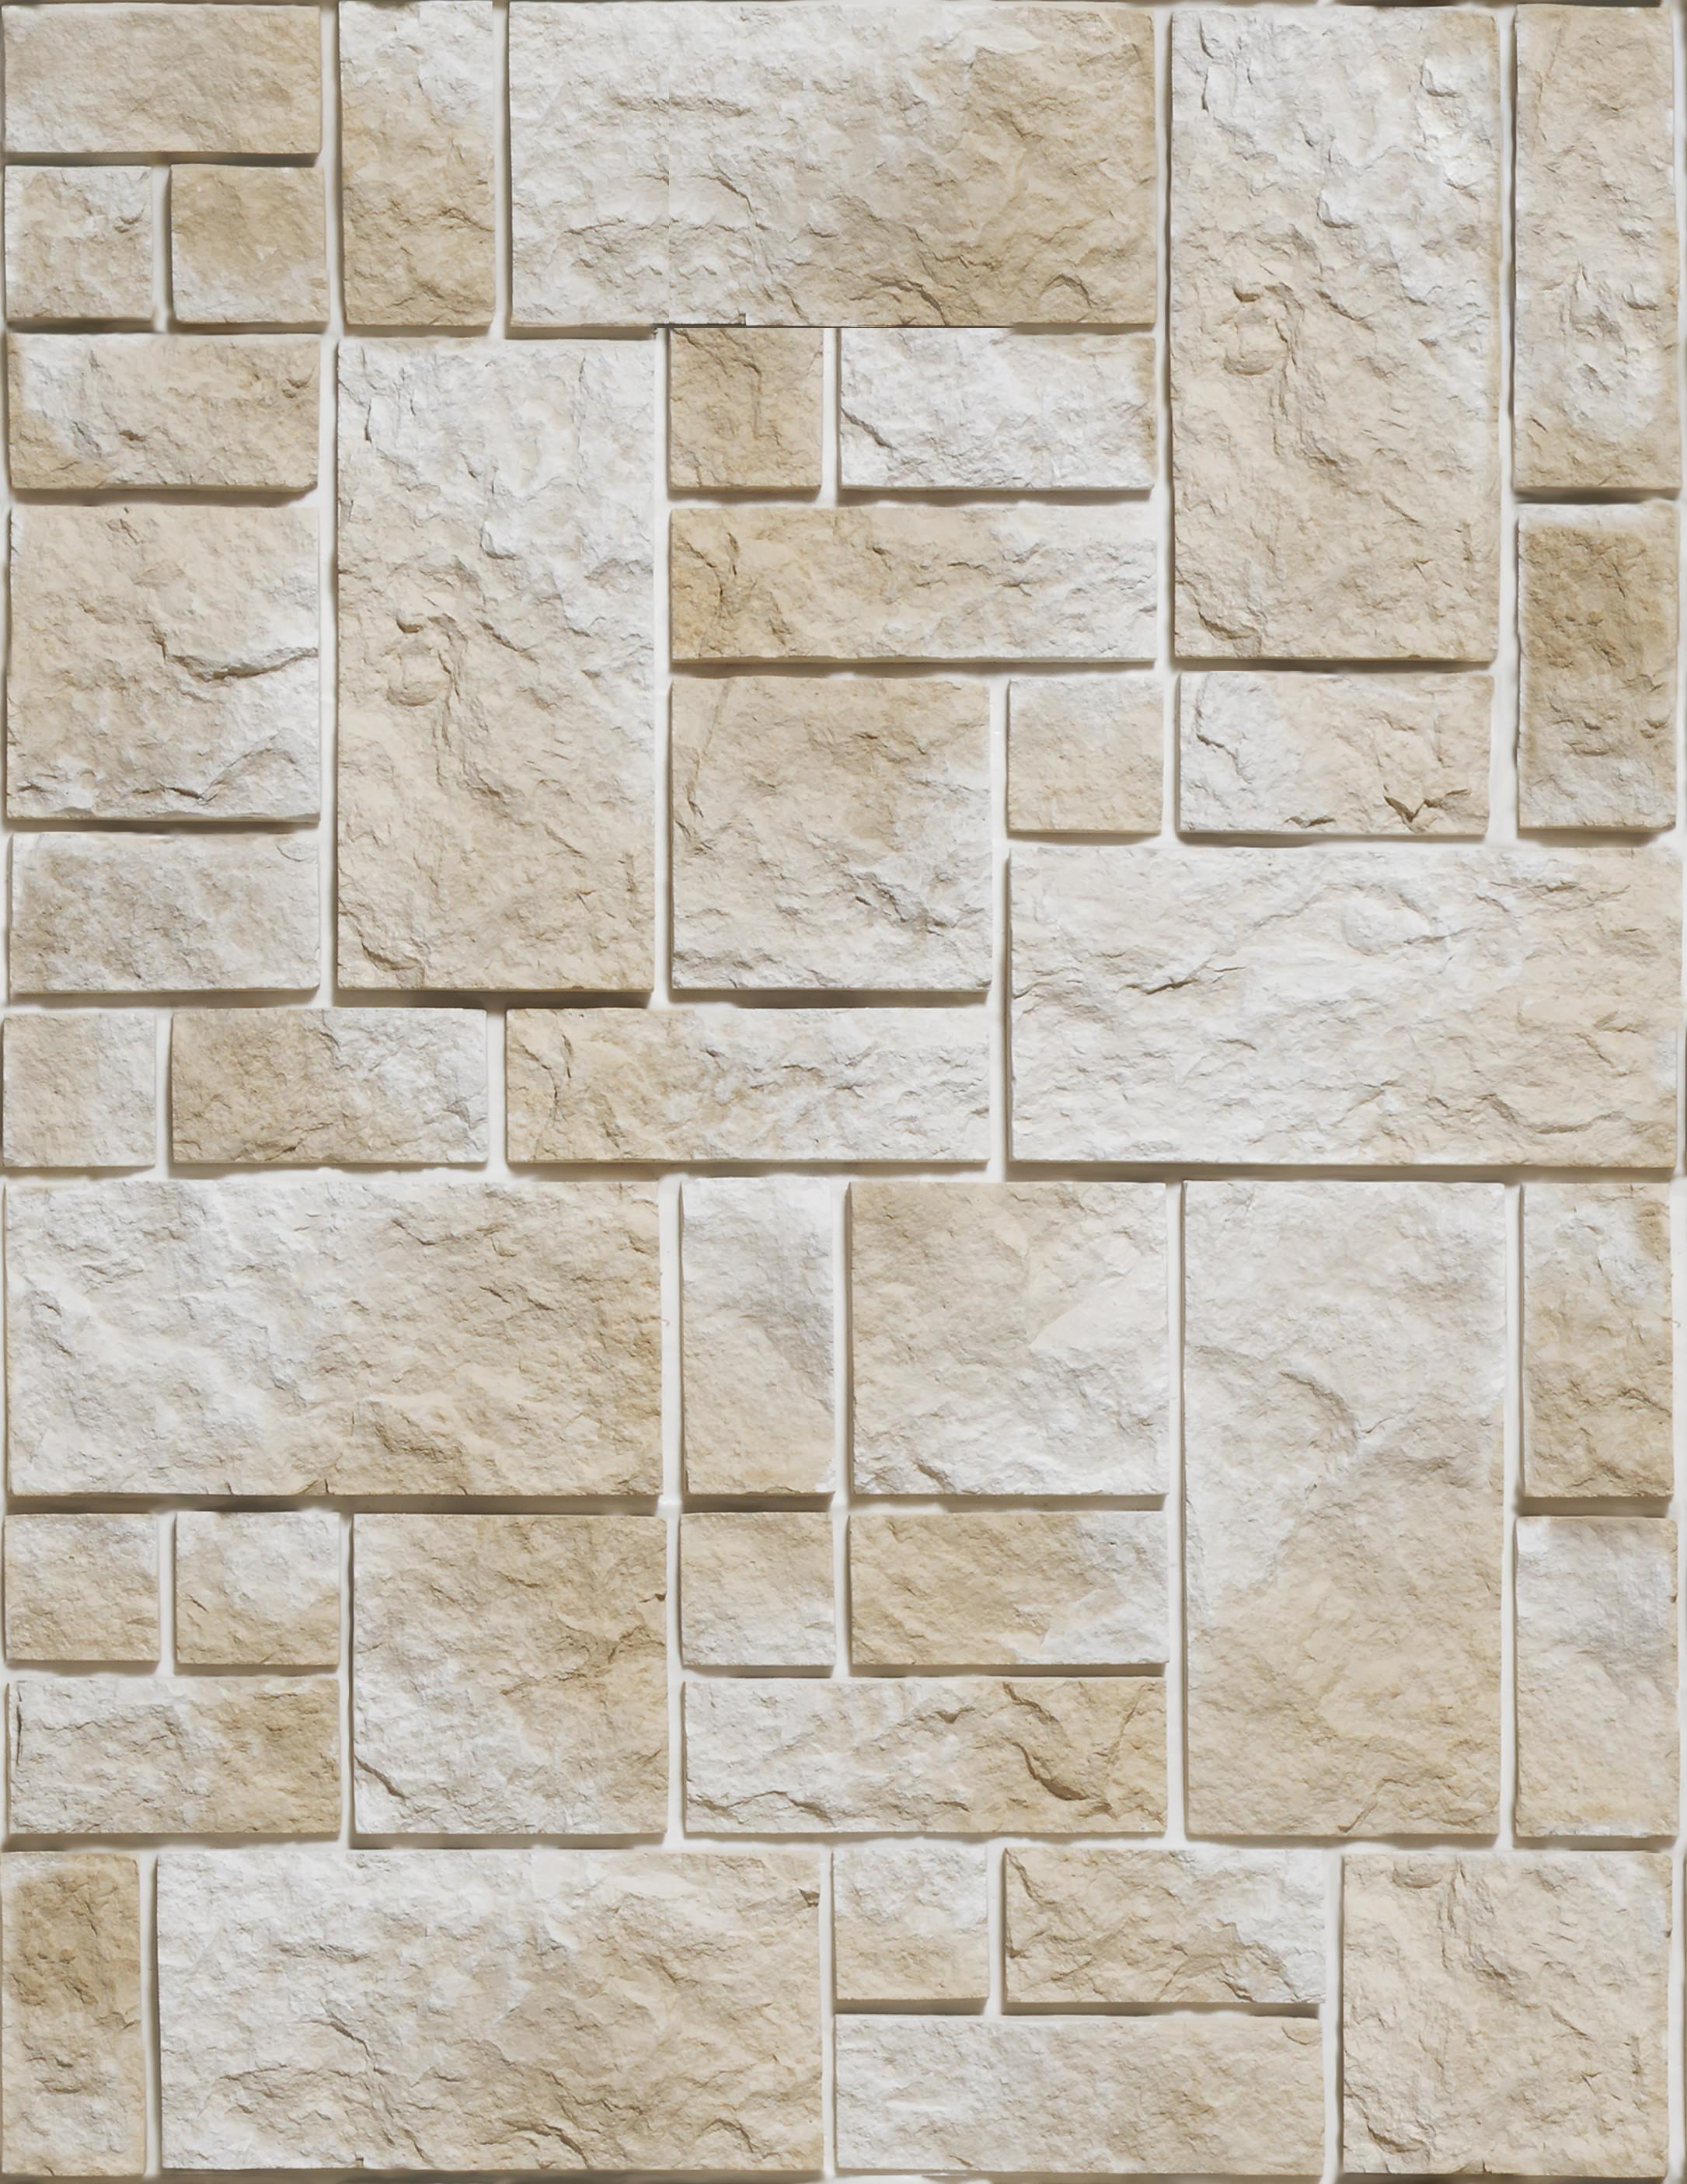 Stone Hewn Tile Texture Wall